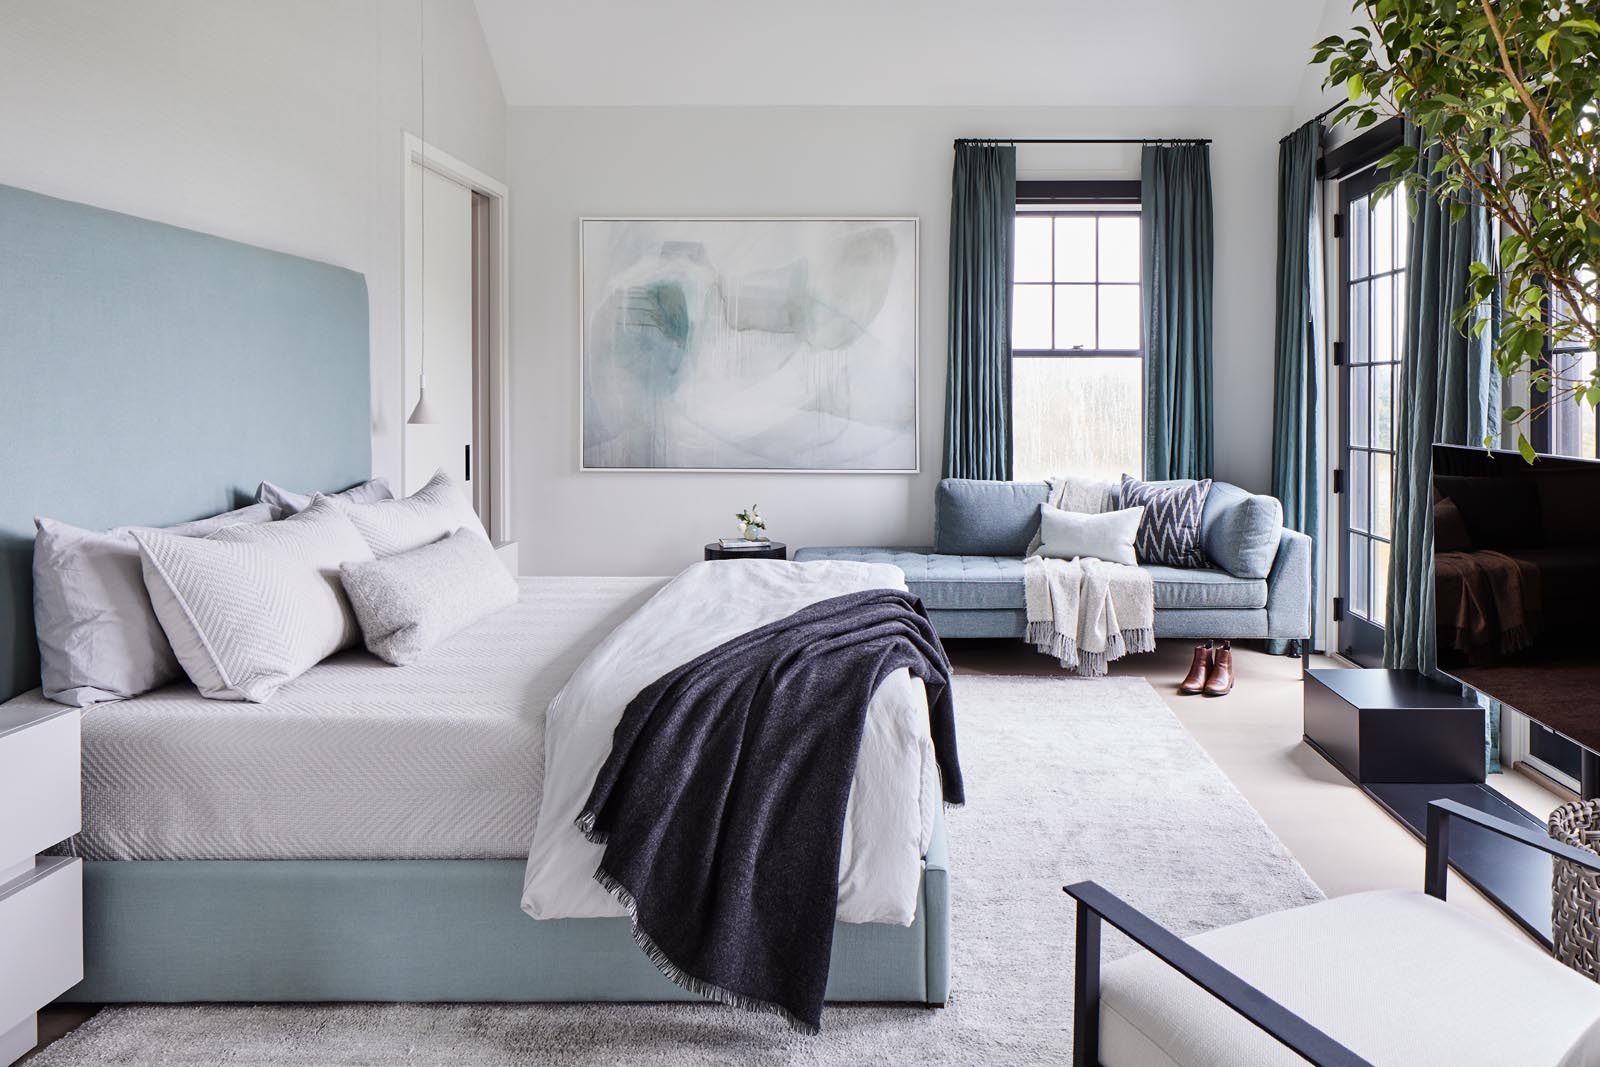 A sun-soaked master bedroom was designed with a calming light blue color palate inspired by the home's natural surroundings.